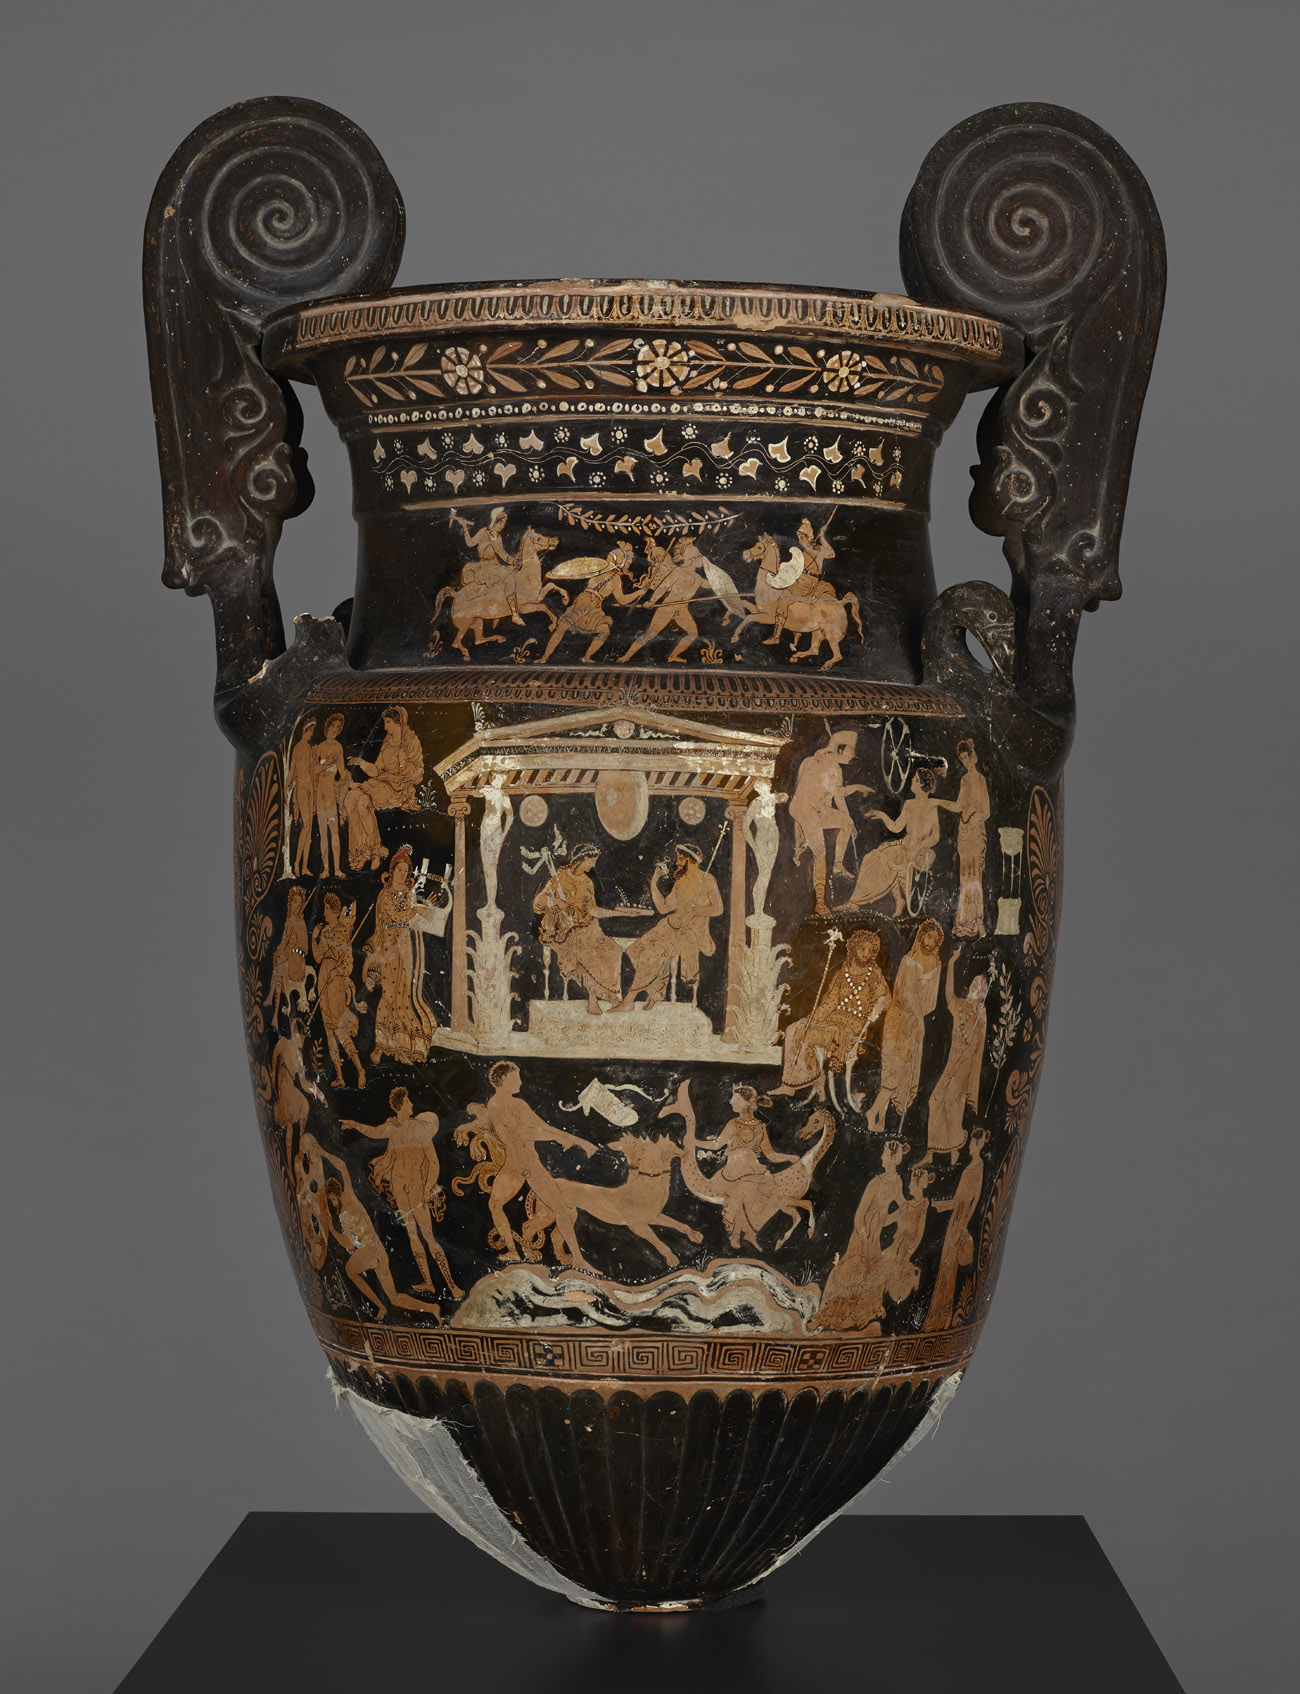 Ancient Vase Presents A Who S Who Of The Underworld The